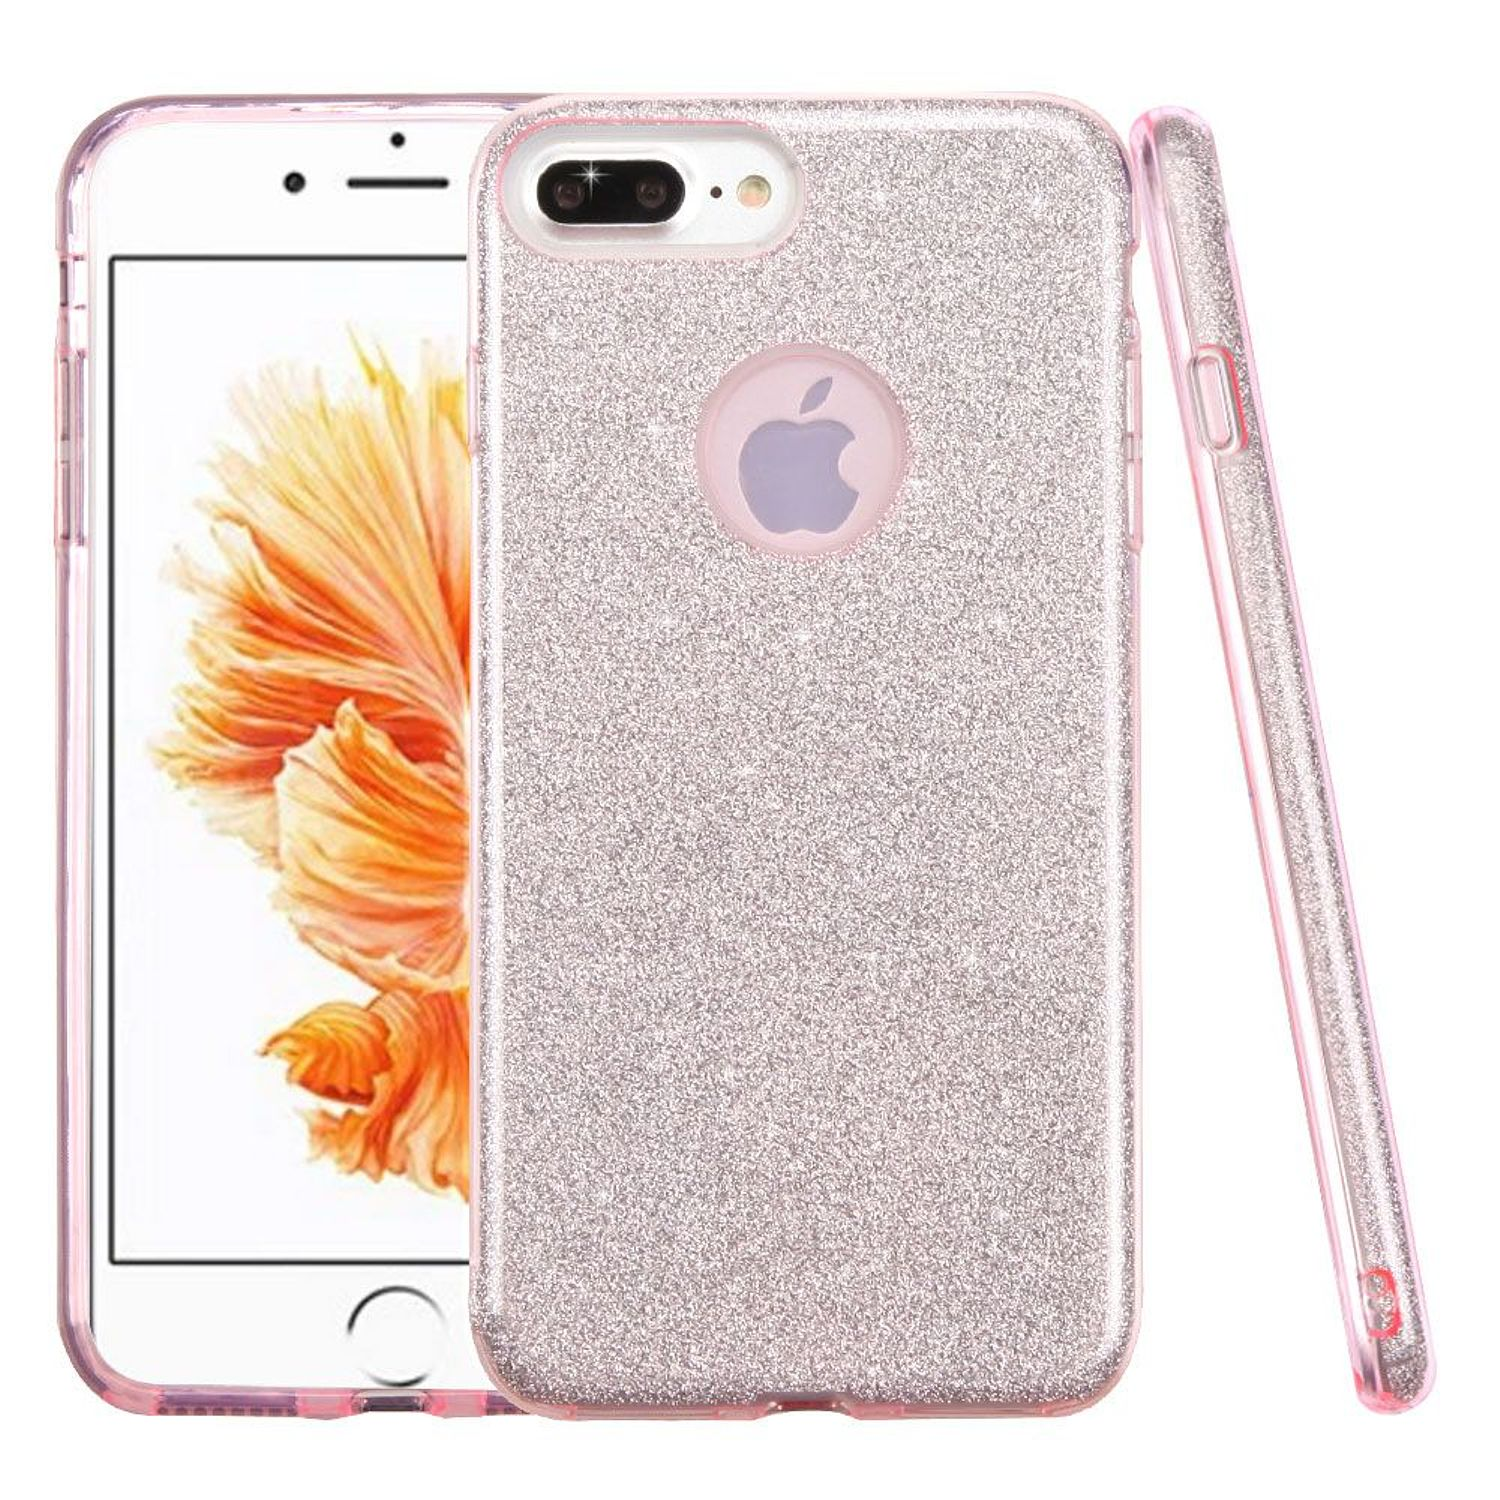 iPhone 8 Plus Glitter Case, by Insten Glitter Bling Hybrid Hard Plastic / Soft Flexible Rubber Case Cover for Apple iPhone 8 Plus / iPhone 7 Plus - Pink